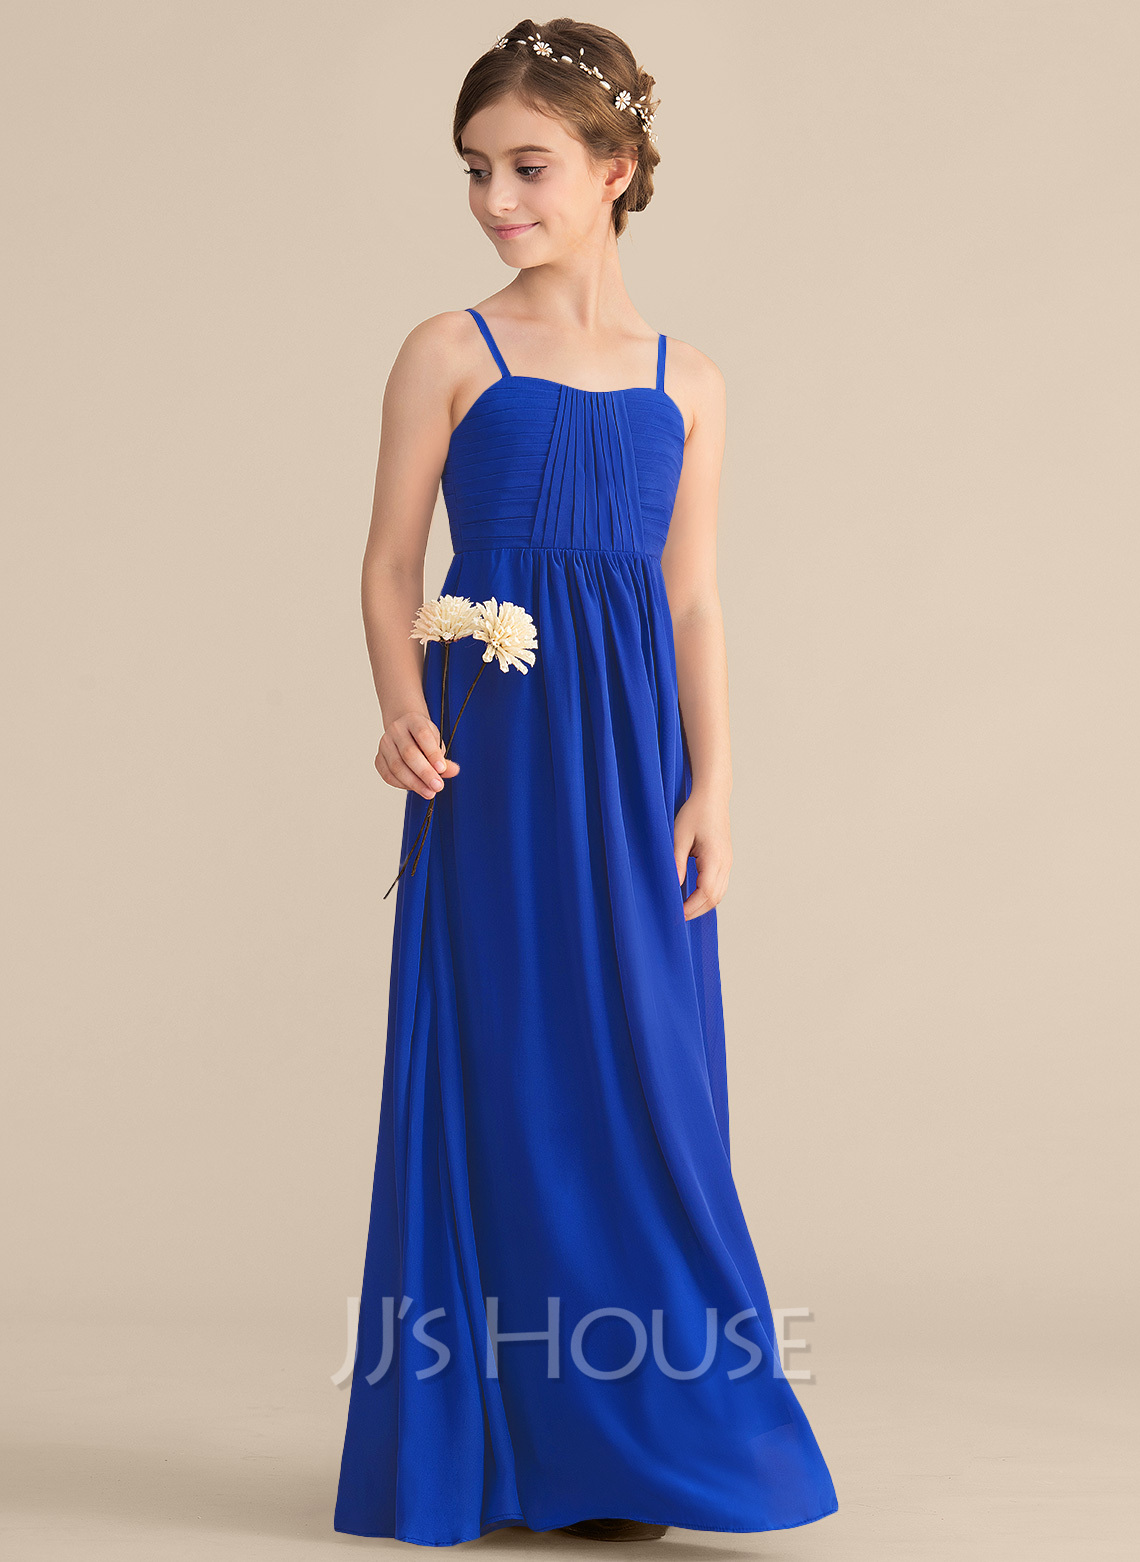 A-Line Sweetheart Floor-Length Chiffon Junior Bridesmaid Dress With Ruffle